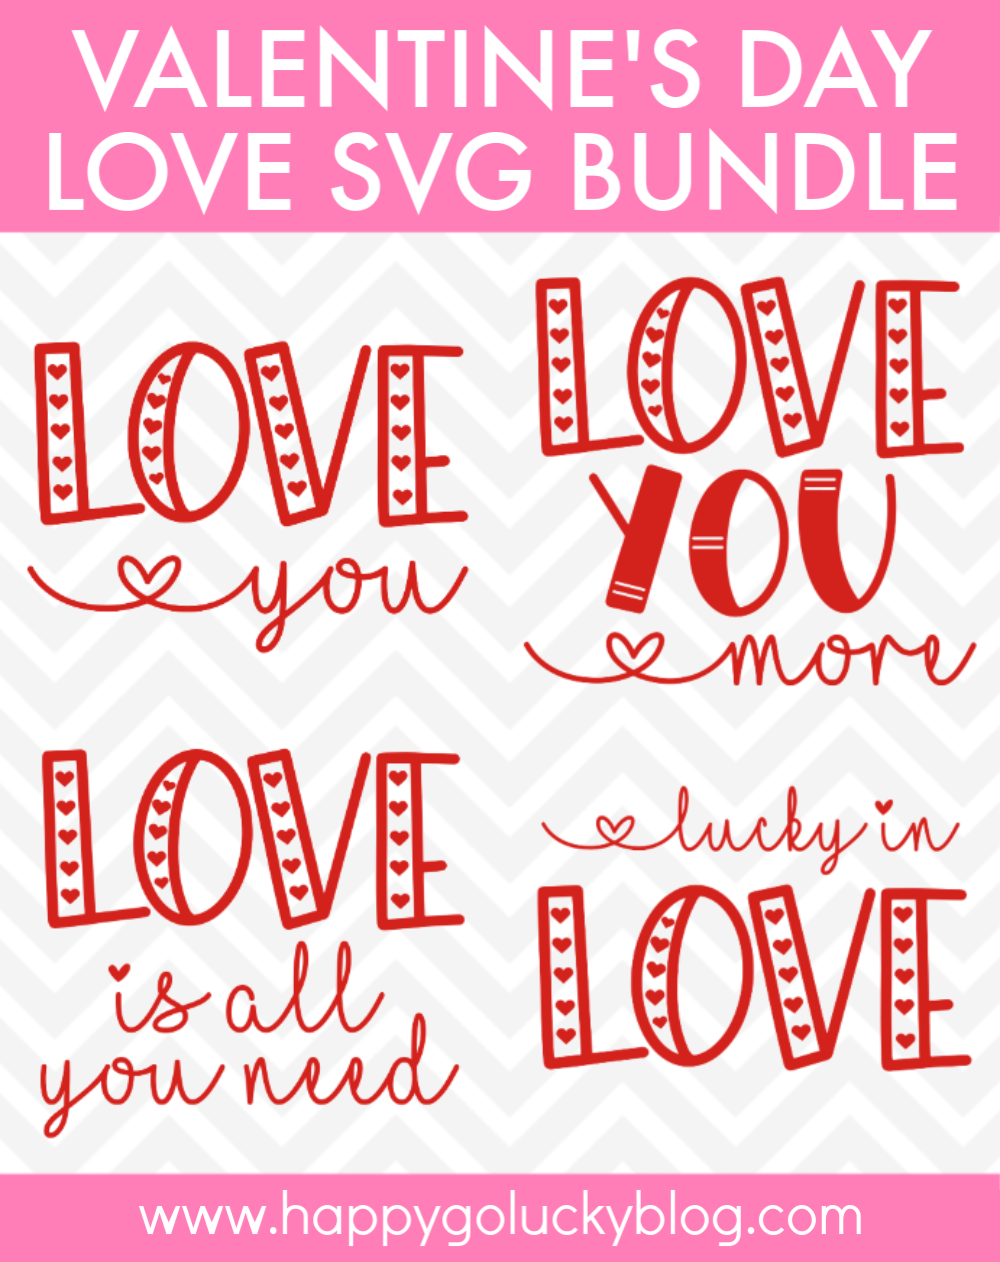 Free Valentine's Day Love SVG Bundle